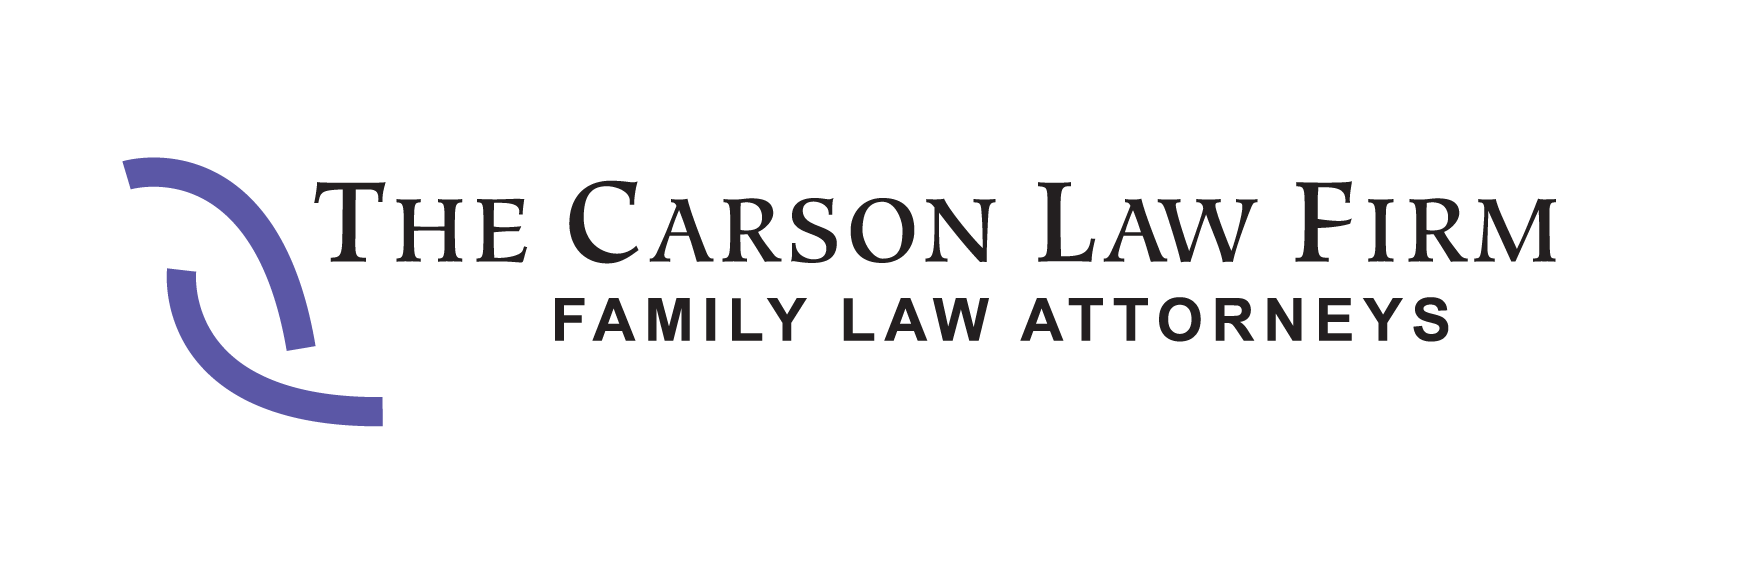 The Carson Law Firm